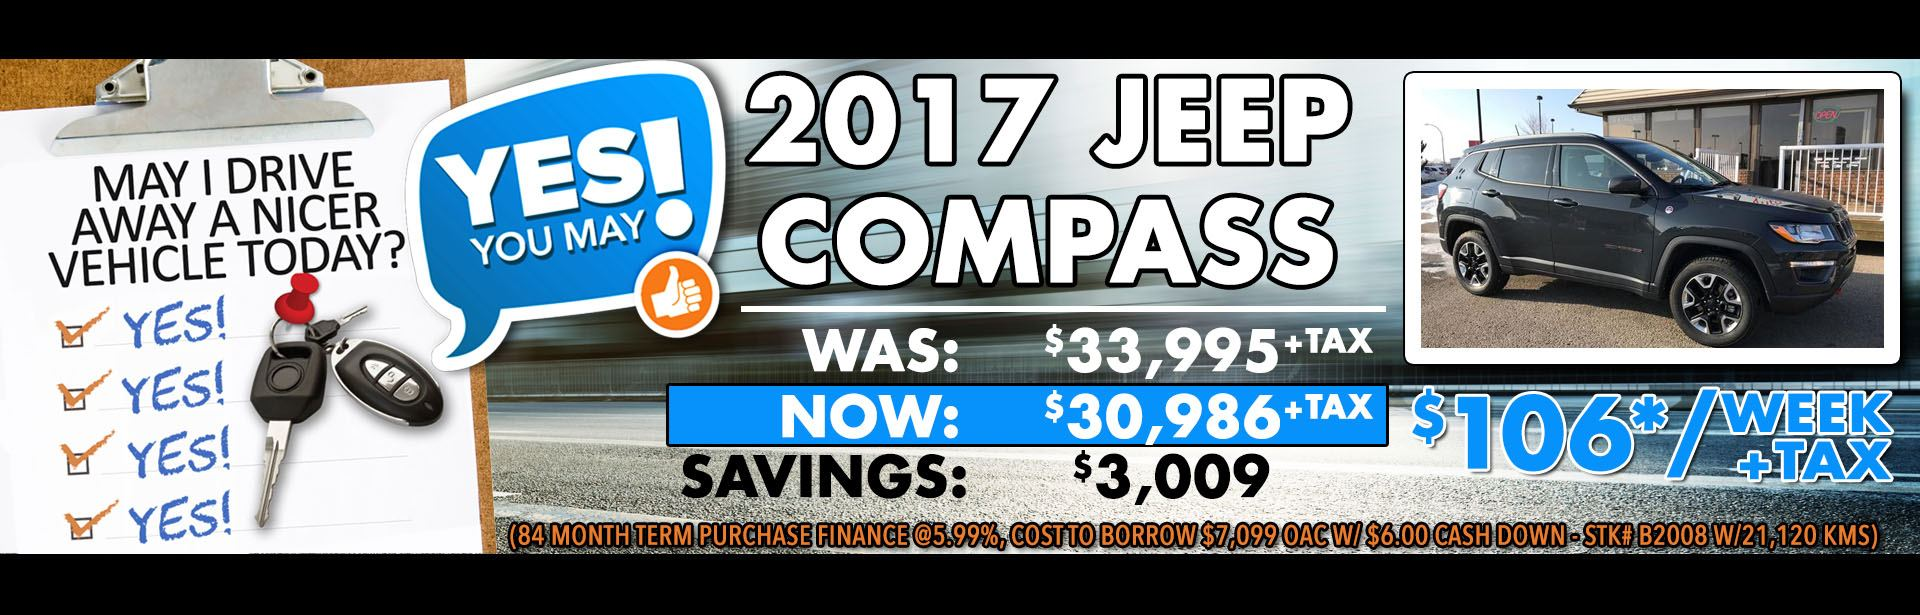 Yes you May - B2008 - 2017 Jeep Compass trailhawk - May 2018 Was - Now Price 3